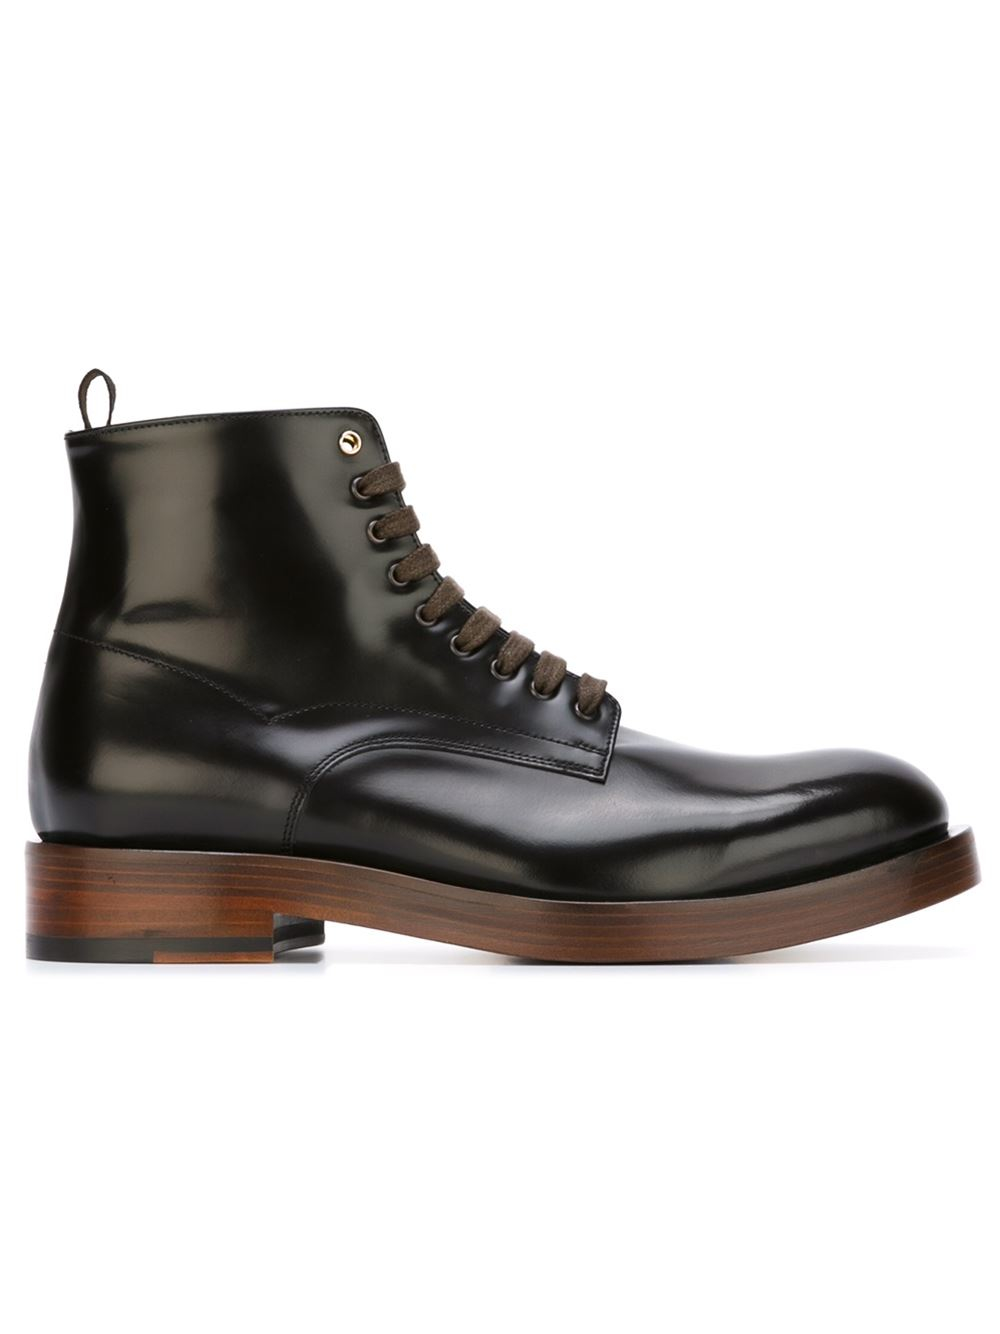 Call It Spring Shoes Men Boots